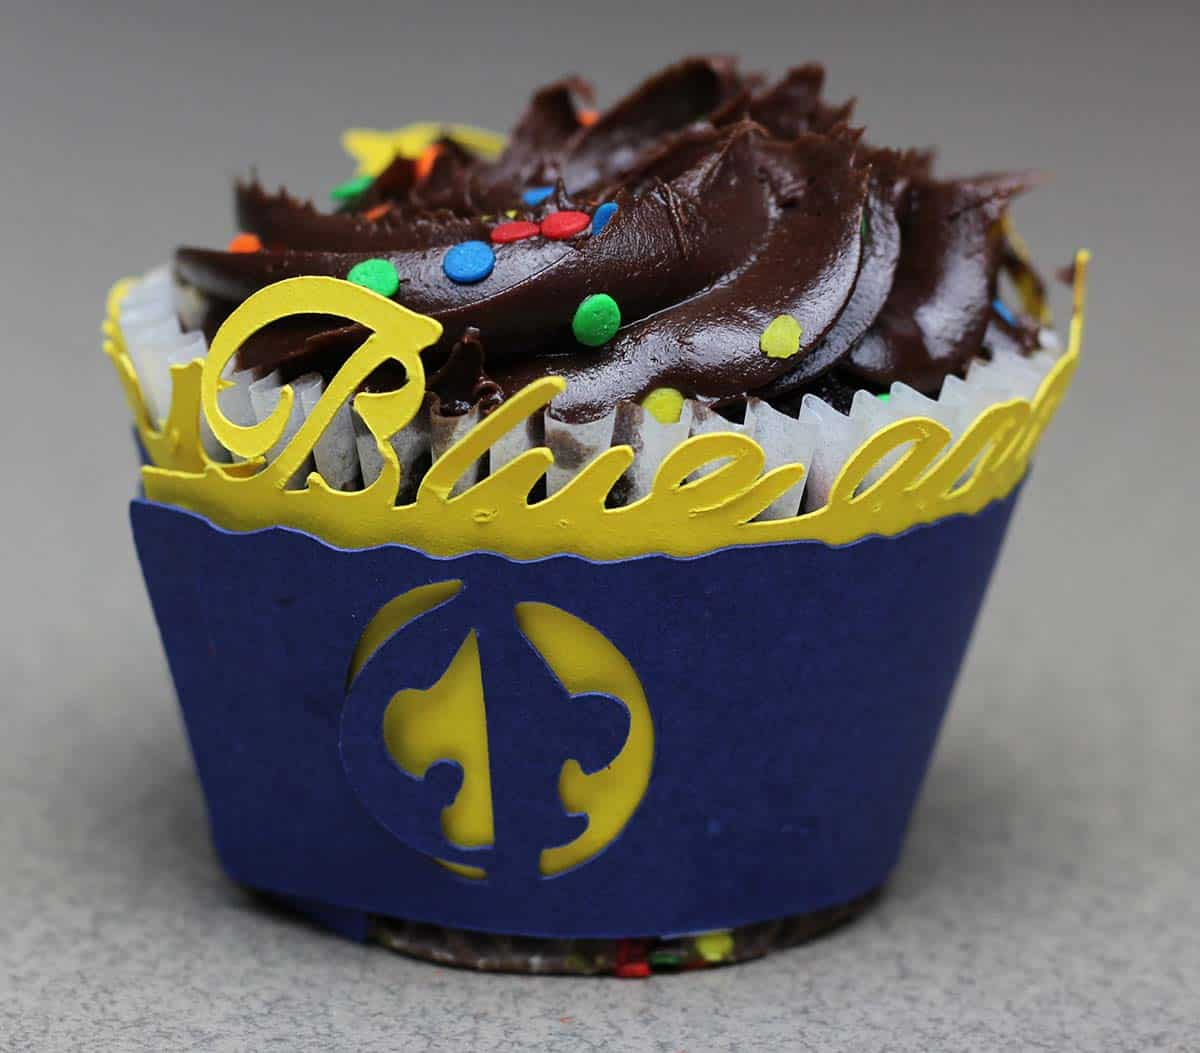 Cub Scout cupcake wrapper made with Cricut